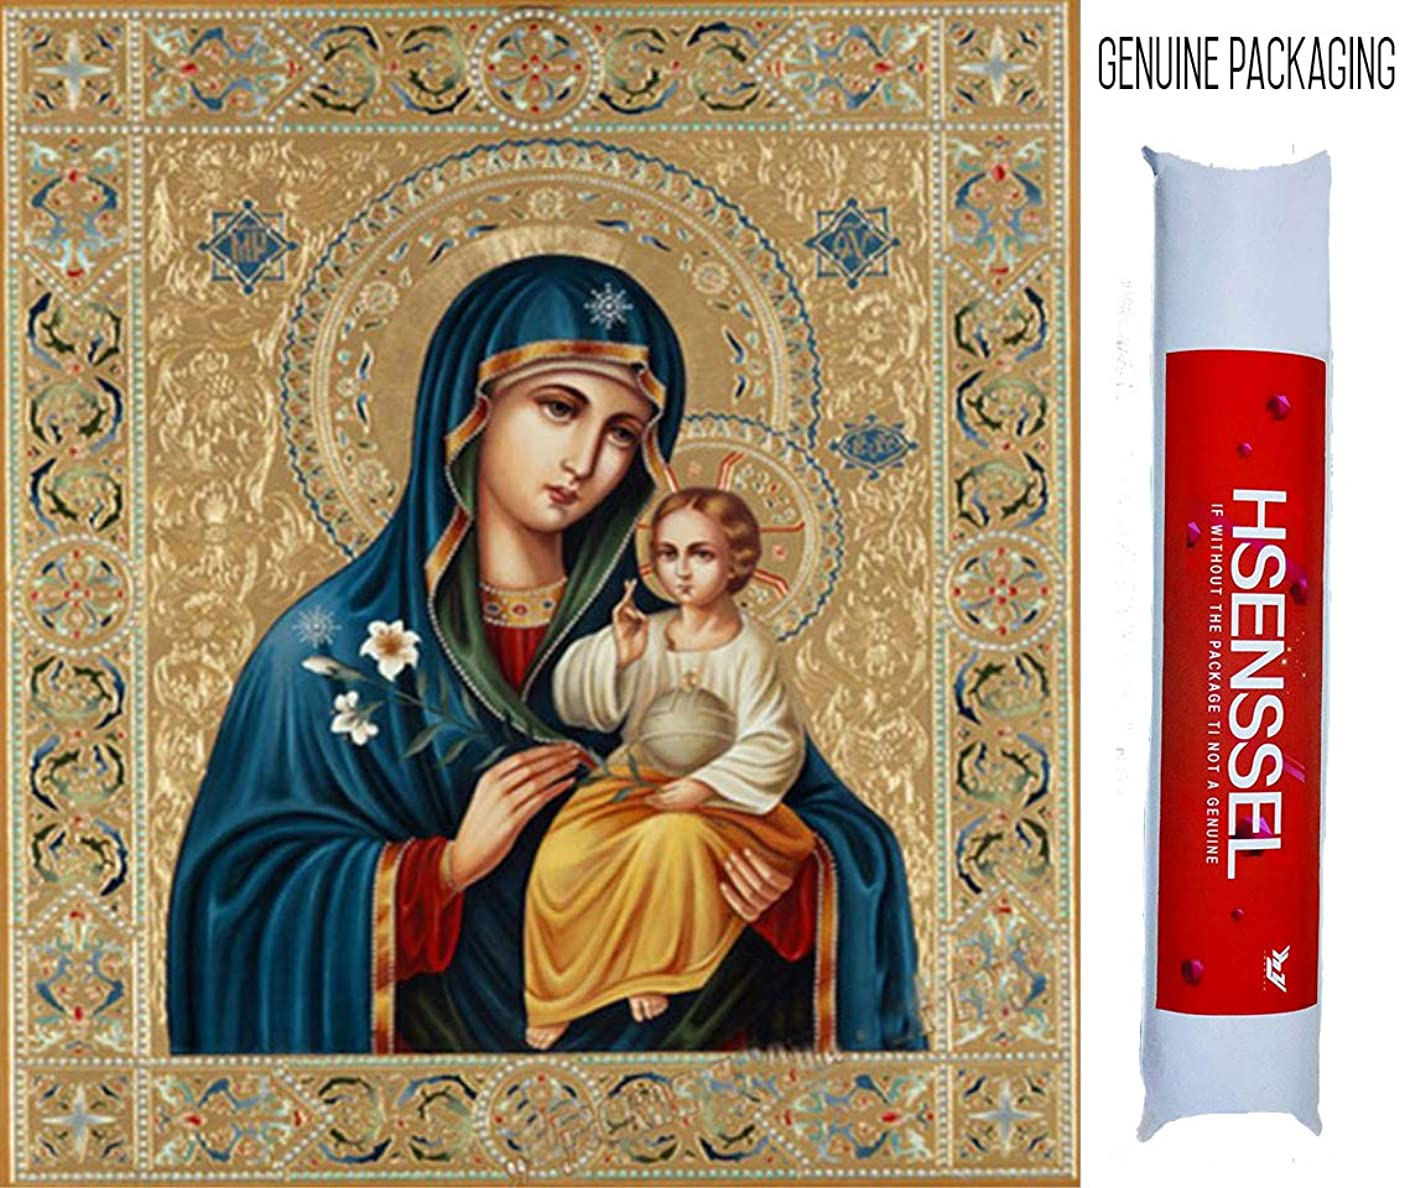 Hsenssel 5d Diamond Painting with Round Full Drill Diamond Painting Kits Virgin Mary Holds Jesus Embroidery Cross Stitch DIY Wall Painting Decor 30x40cm(Holy Virgin Mary and Baby)